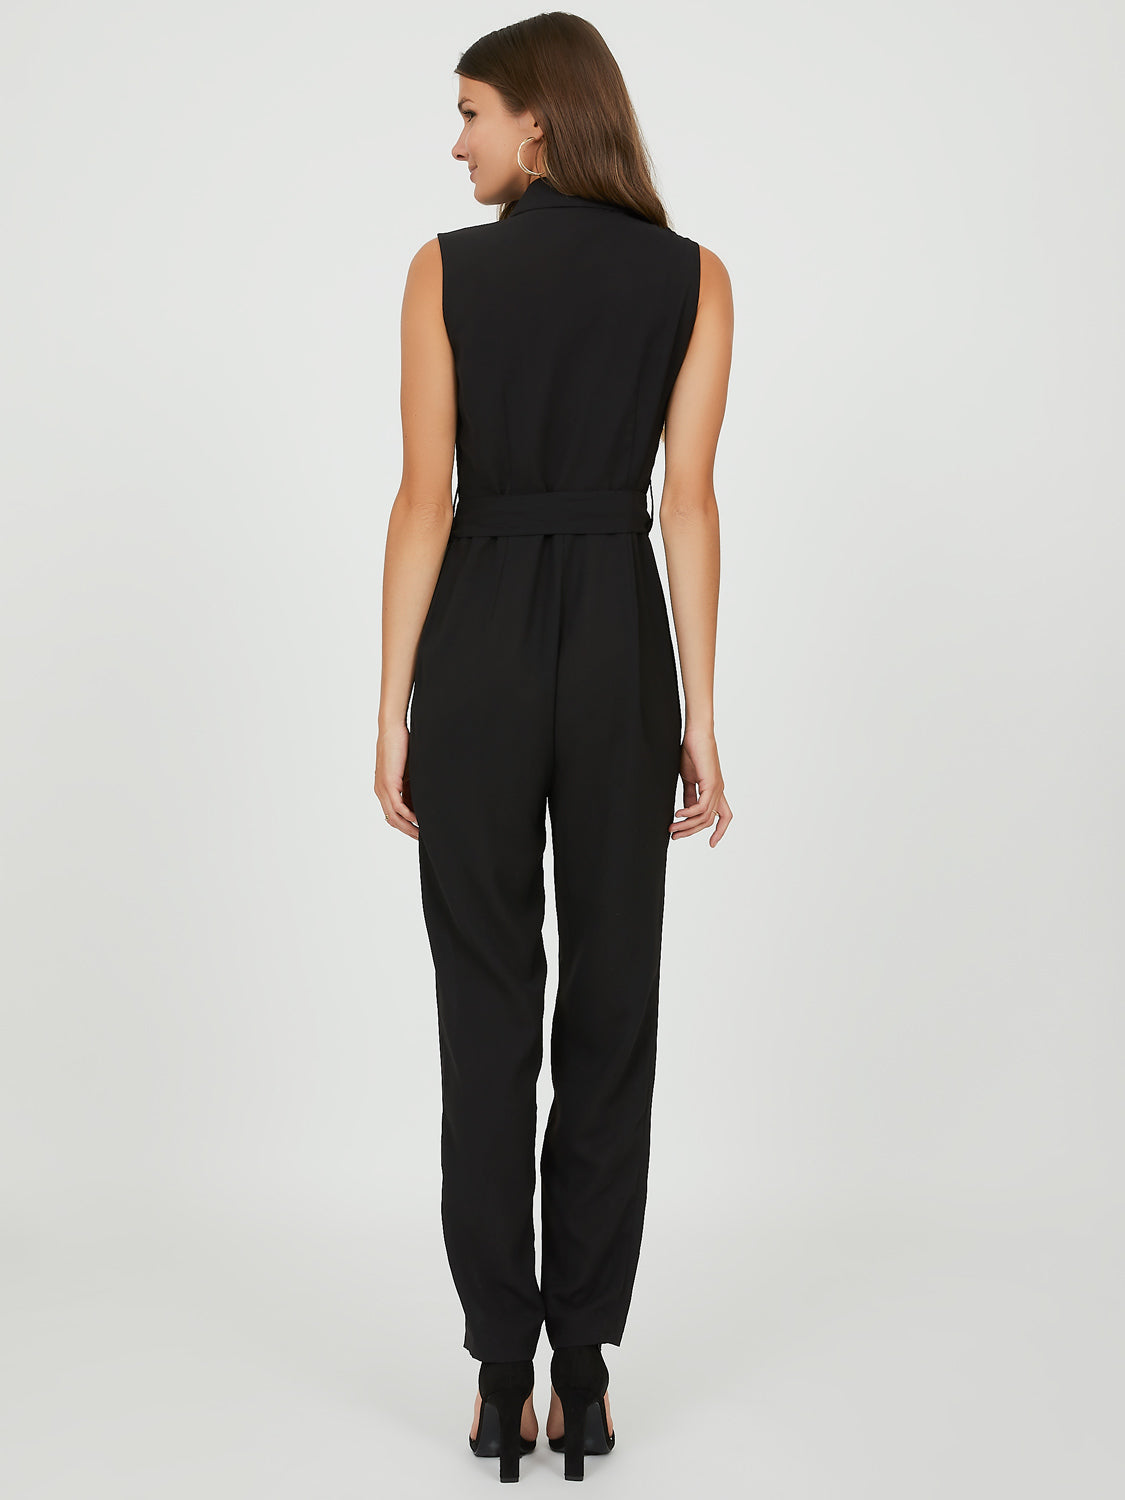 Sleeveless Modern Utility Jumpsuit